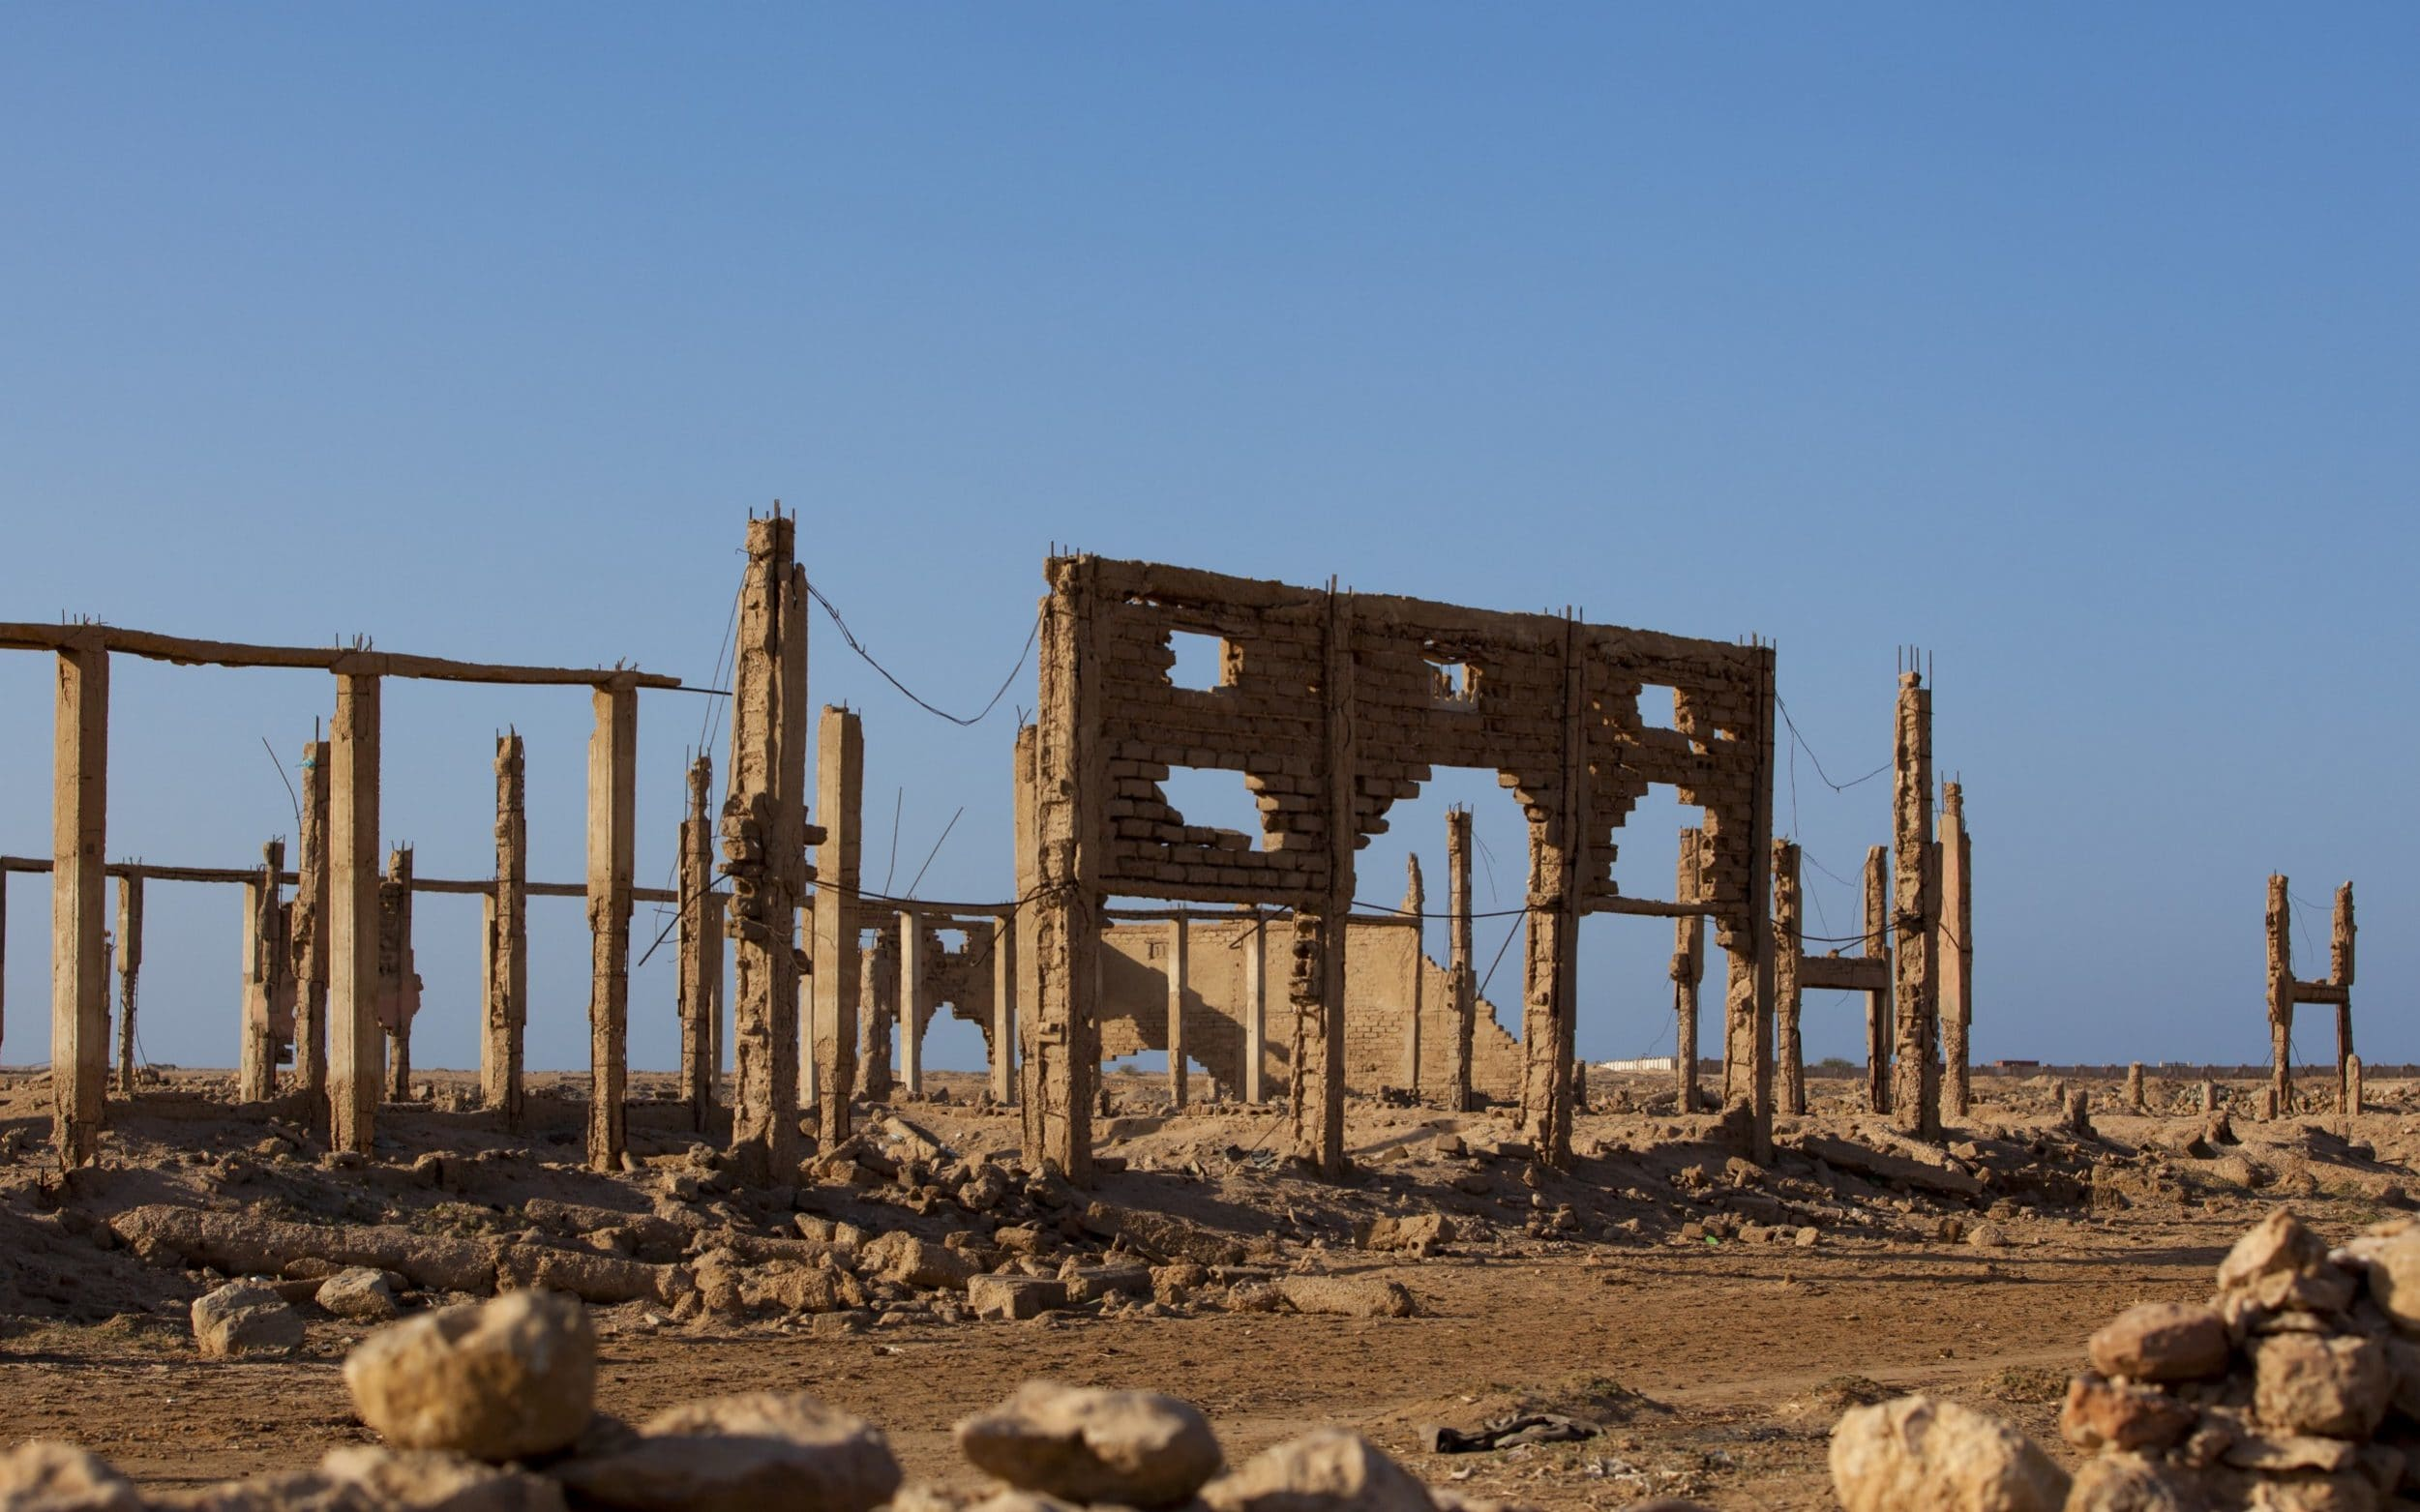 Ruins of building destroyed during civil war in Berbera, Somaliland CREDIT: GAMMA-RAPHO